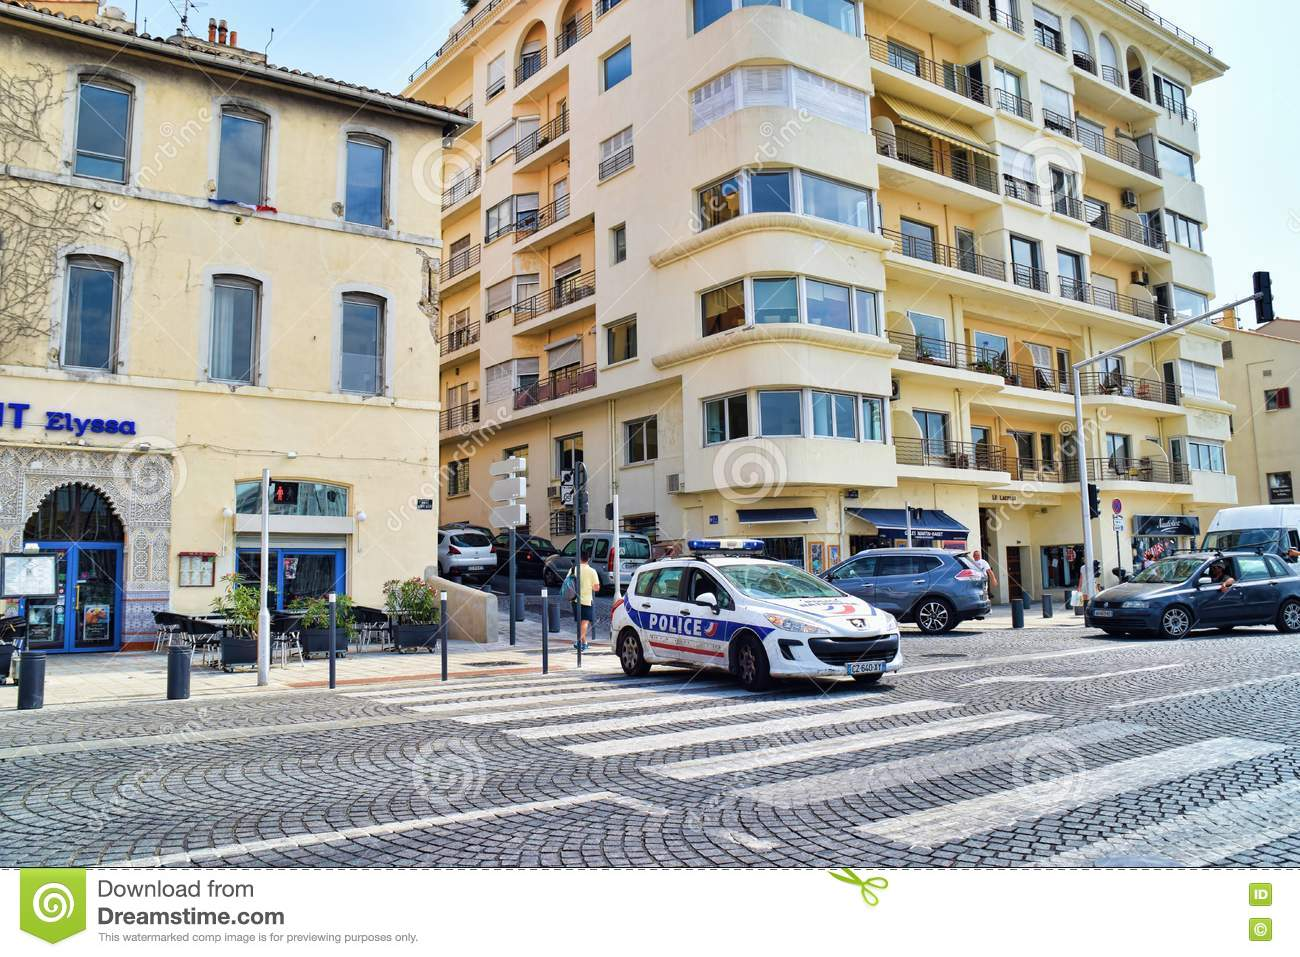 car marseille paris one dead after car crashes into bus shelters in marseille french police. Black Bedroom Furniture Sets. Home Design Ideas